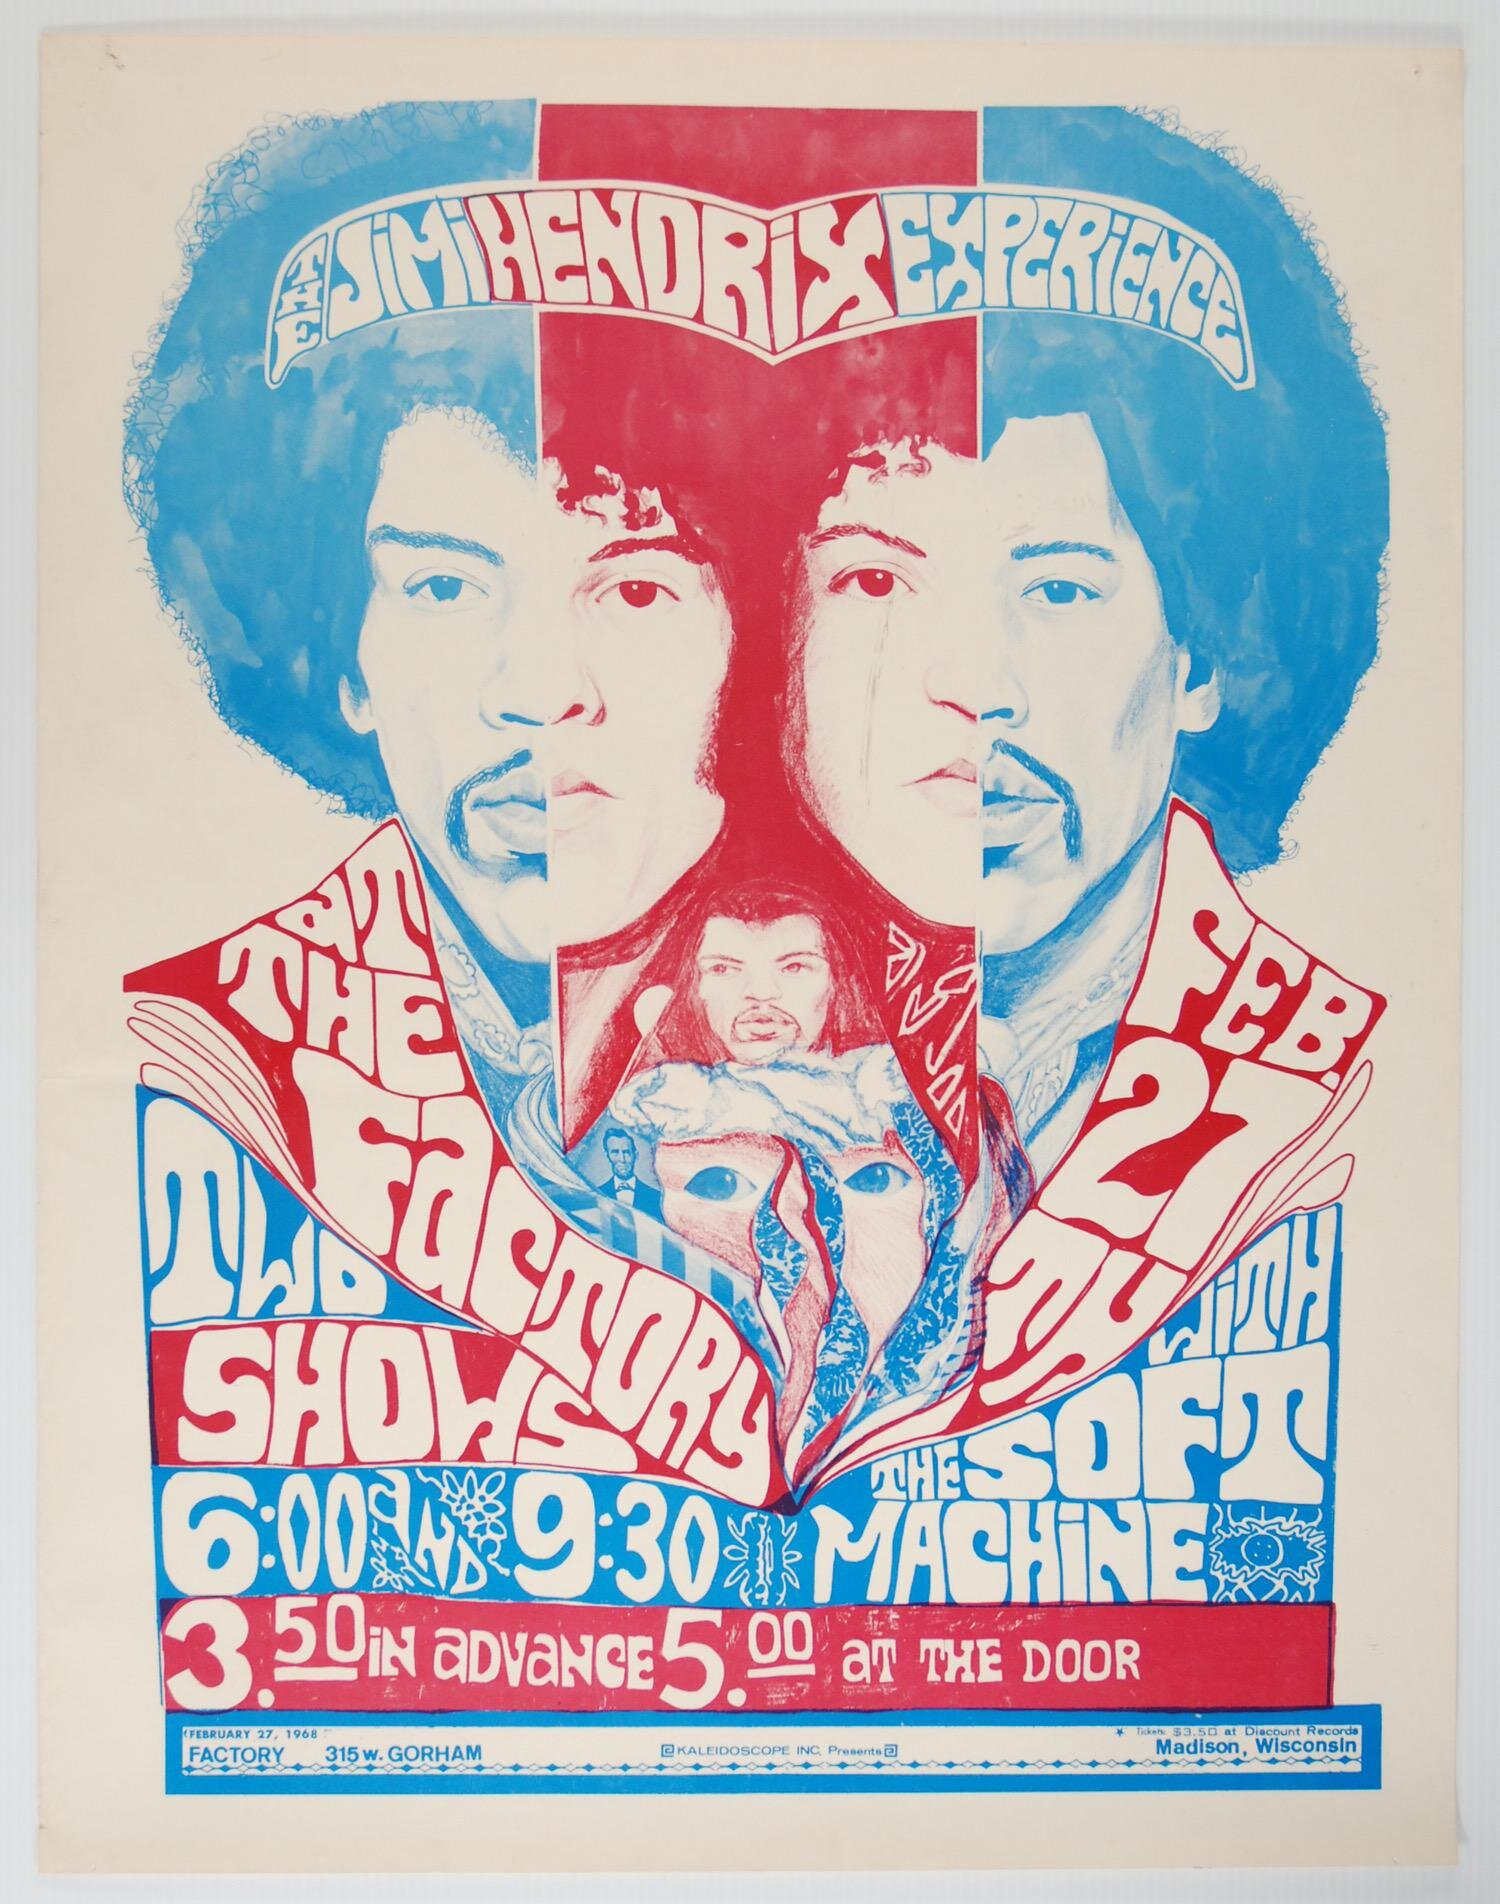 Jimi Hendrix Experience, The Factory